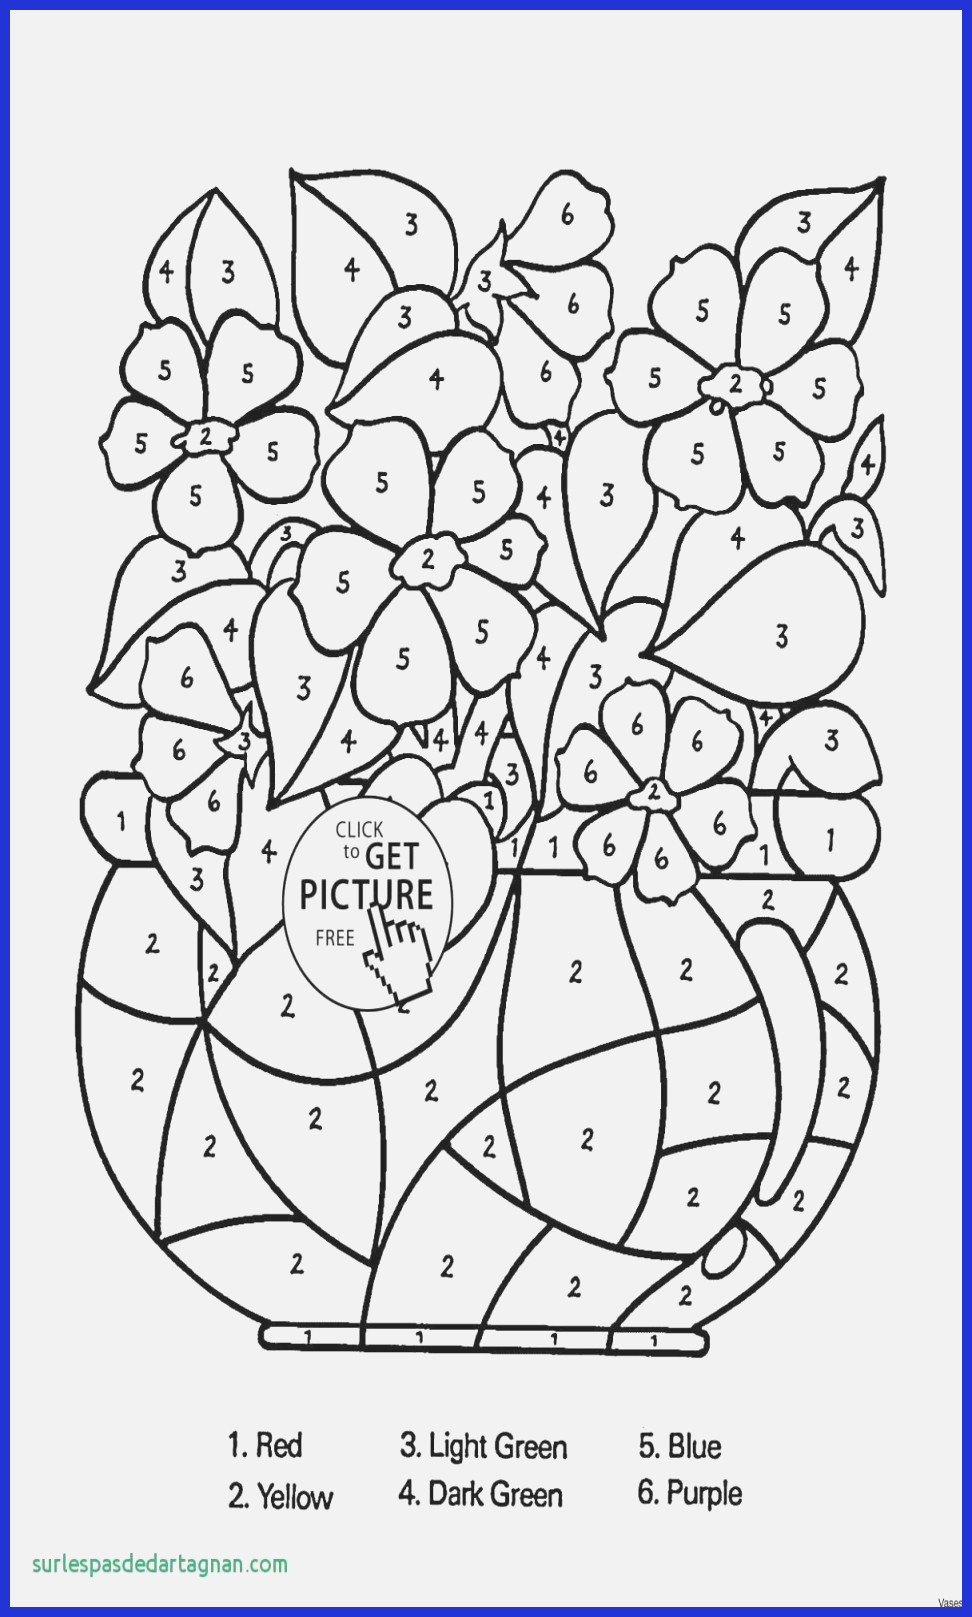 Free Printable Earth Day Coloring Pages And Activities Printable Earth Day Coloring Pages Free Printable Earth Day Coloring